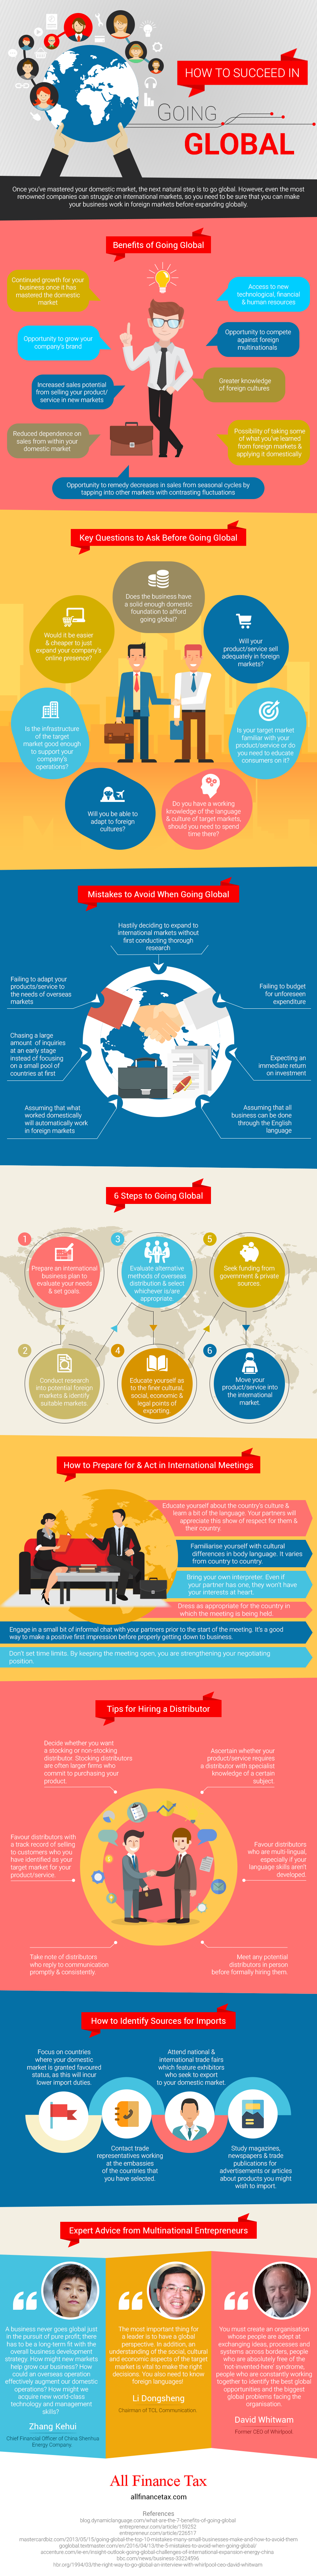 How to Succeed in Going Global - Infographic